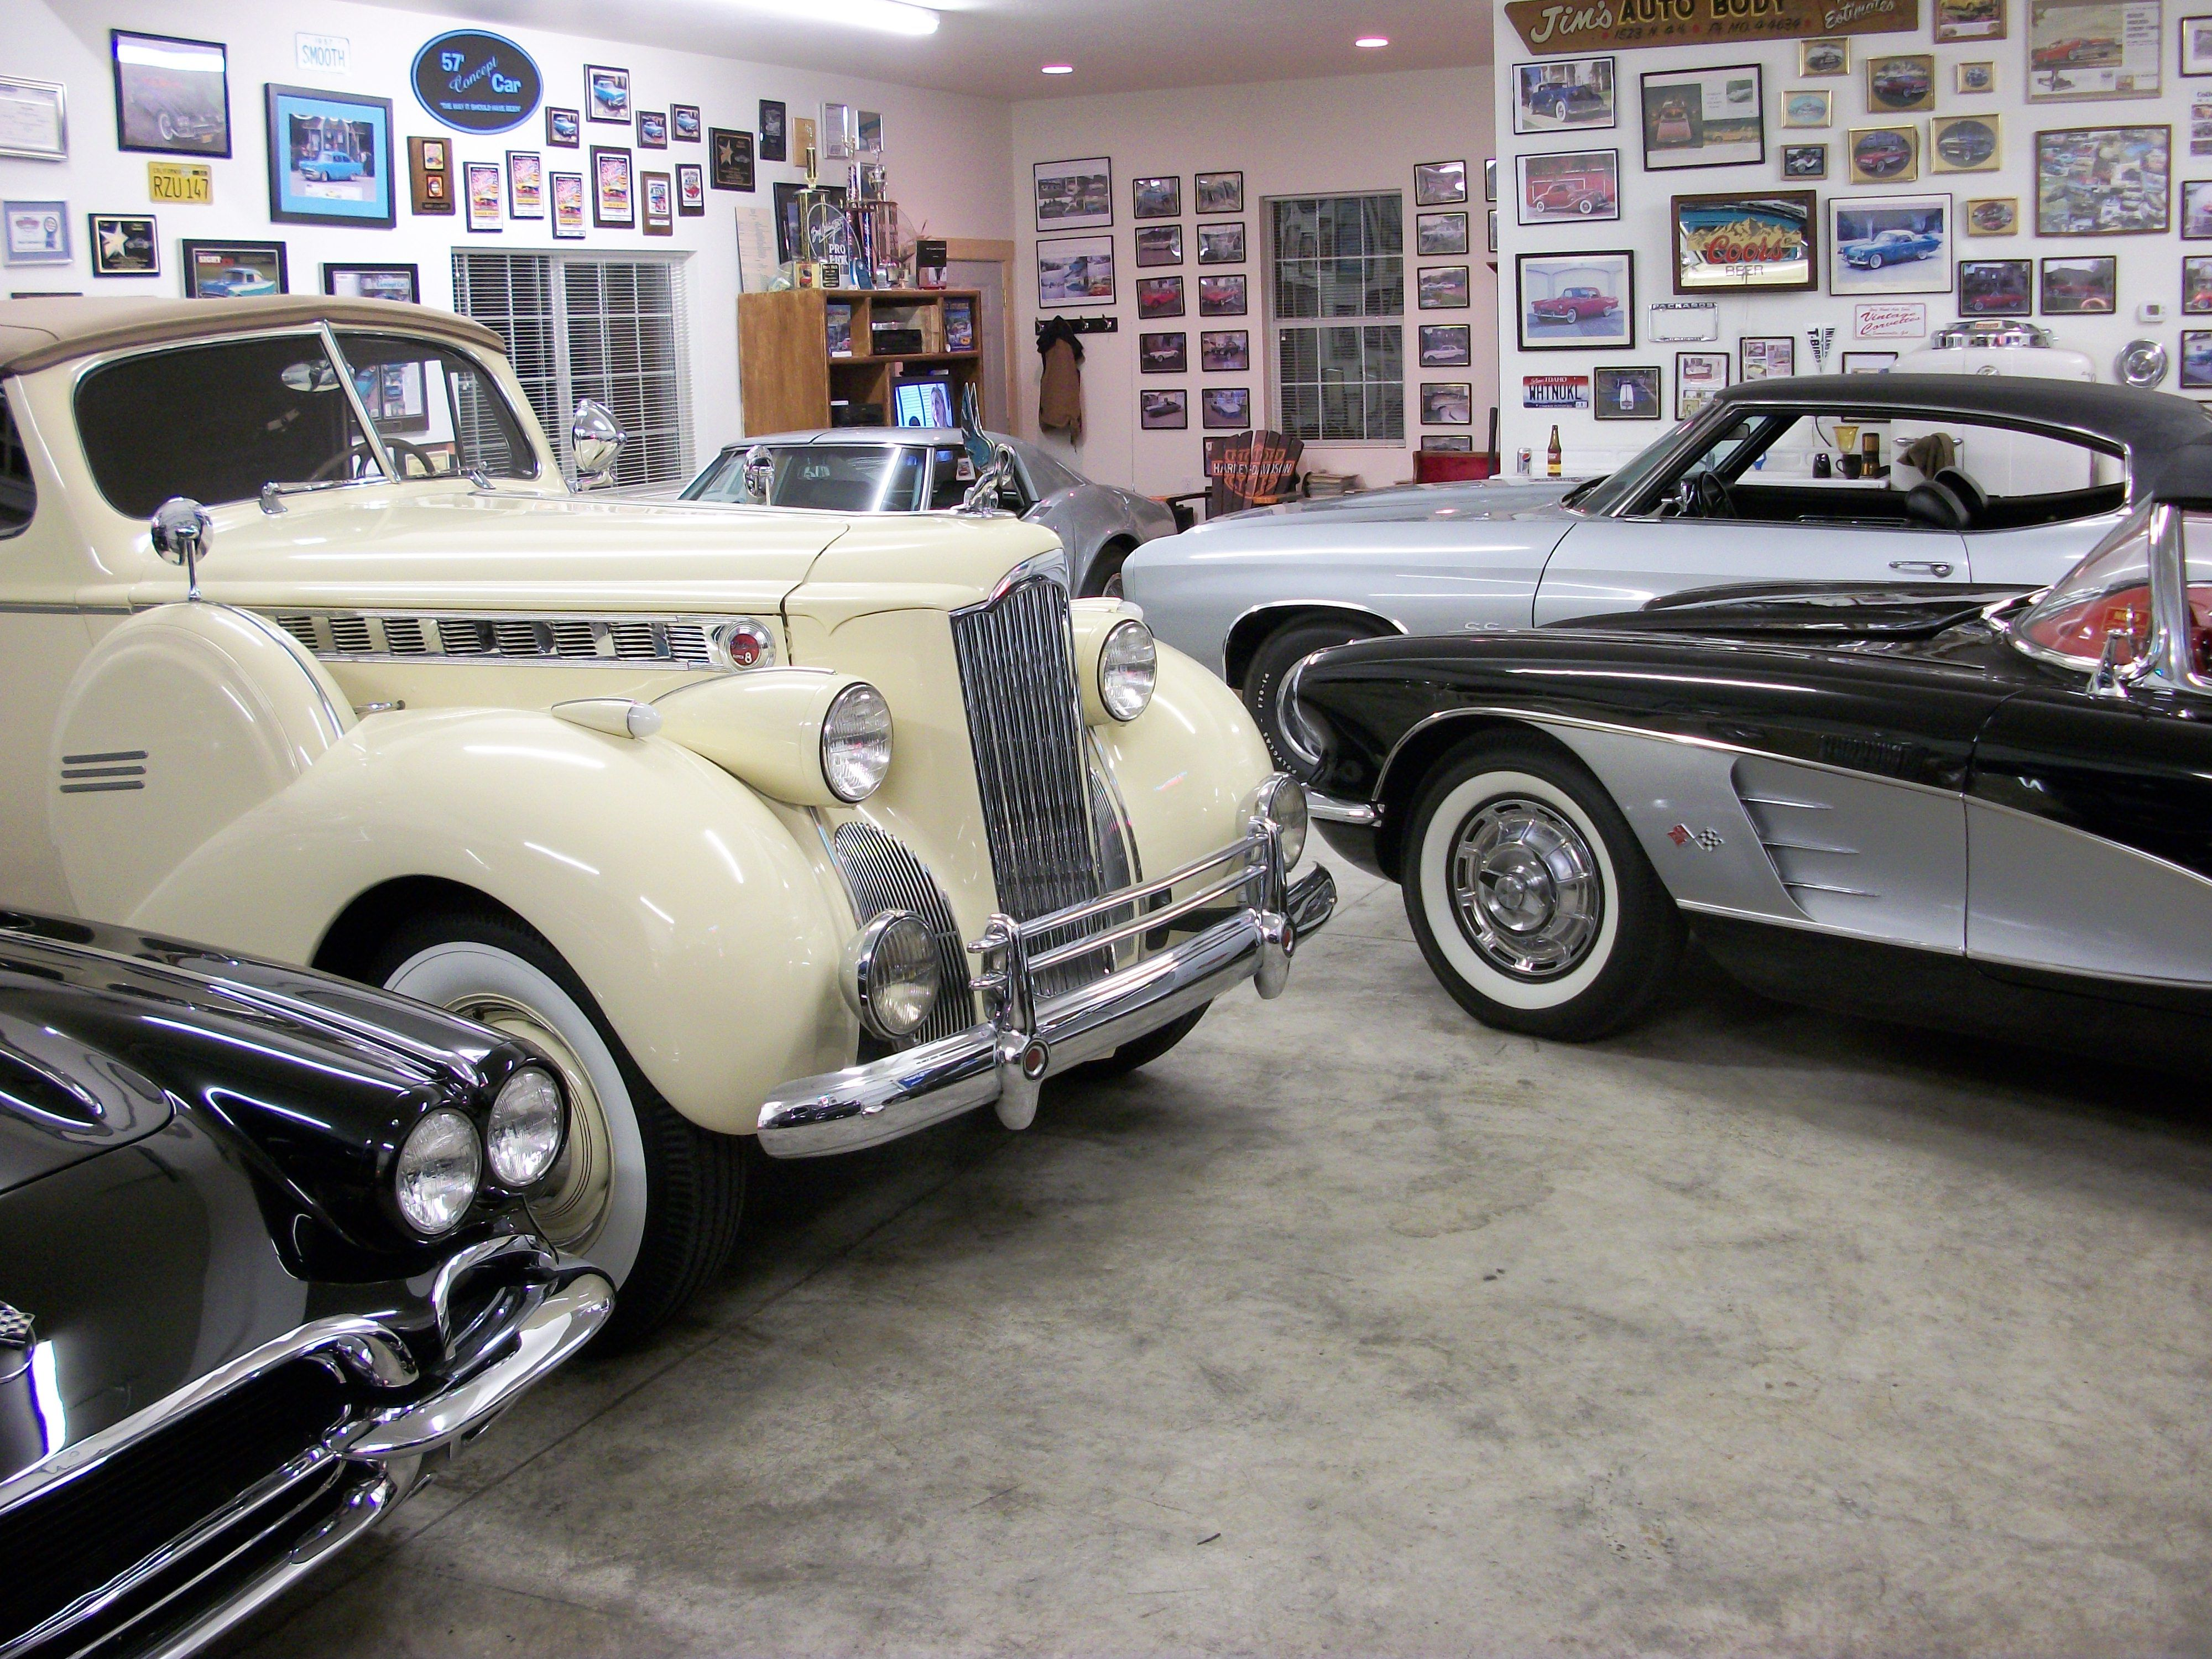 Antique Car Garage 2 Antique Car Garage Classic Cars Antique Cars